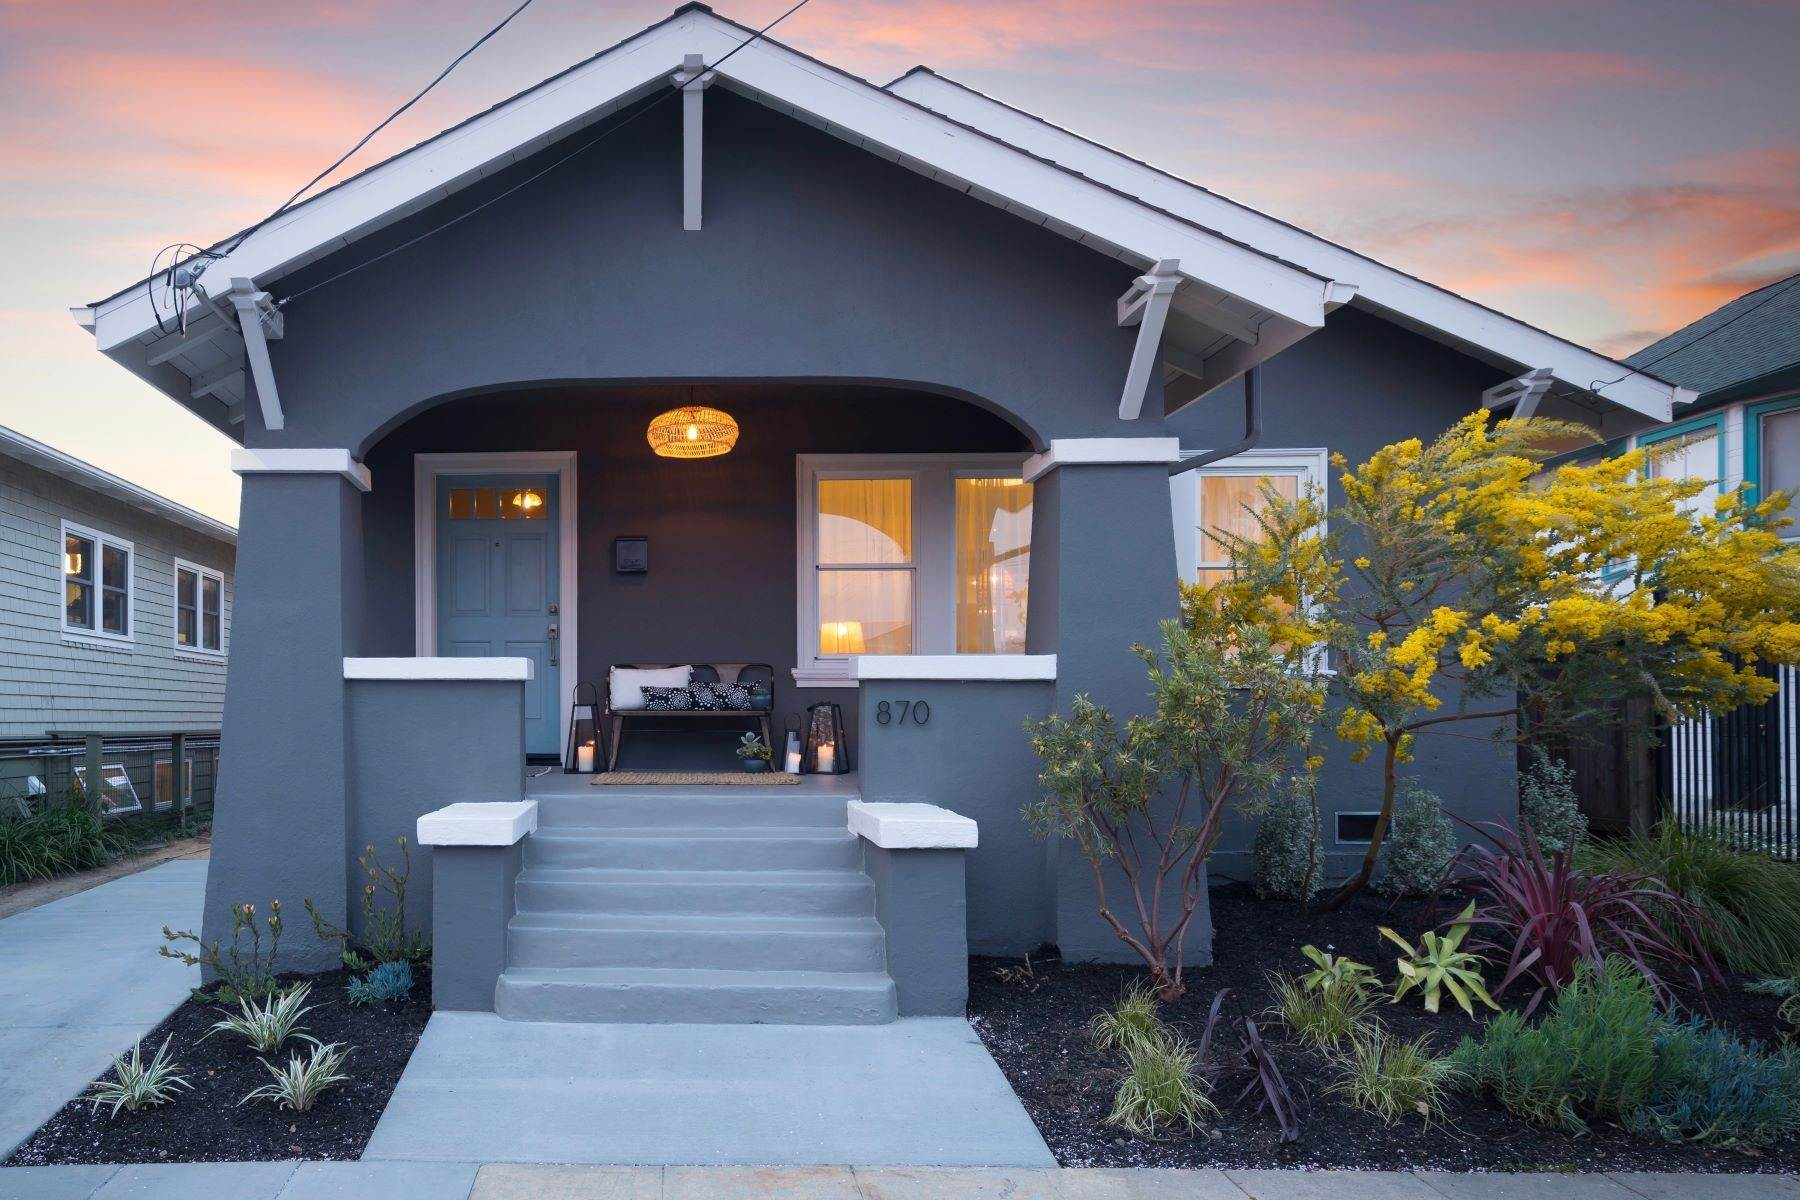 Single Family Homes for Sale at Quintessential NOBE Bungalow 870 46th Street Oakland, California 94608 United States